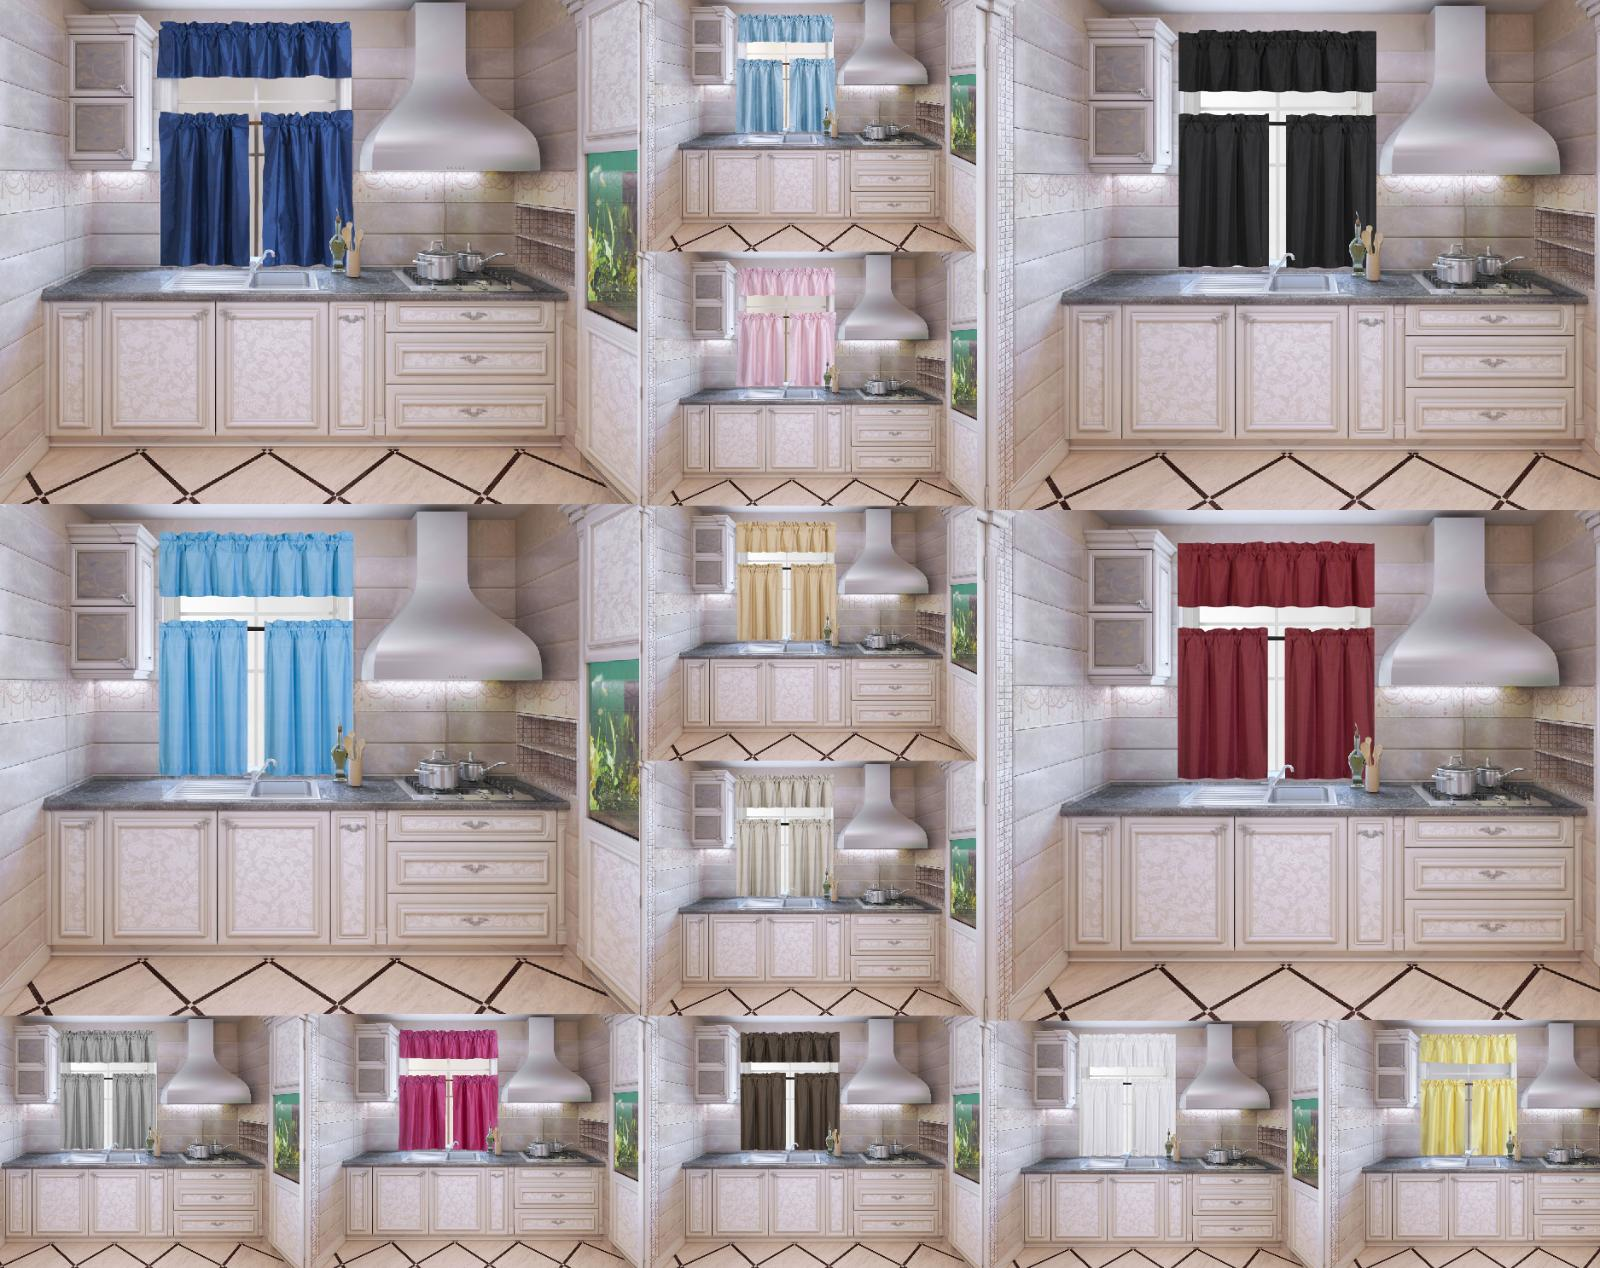 new kitchen collection set window dressing curtain